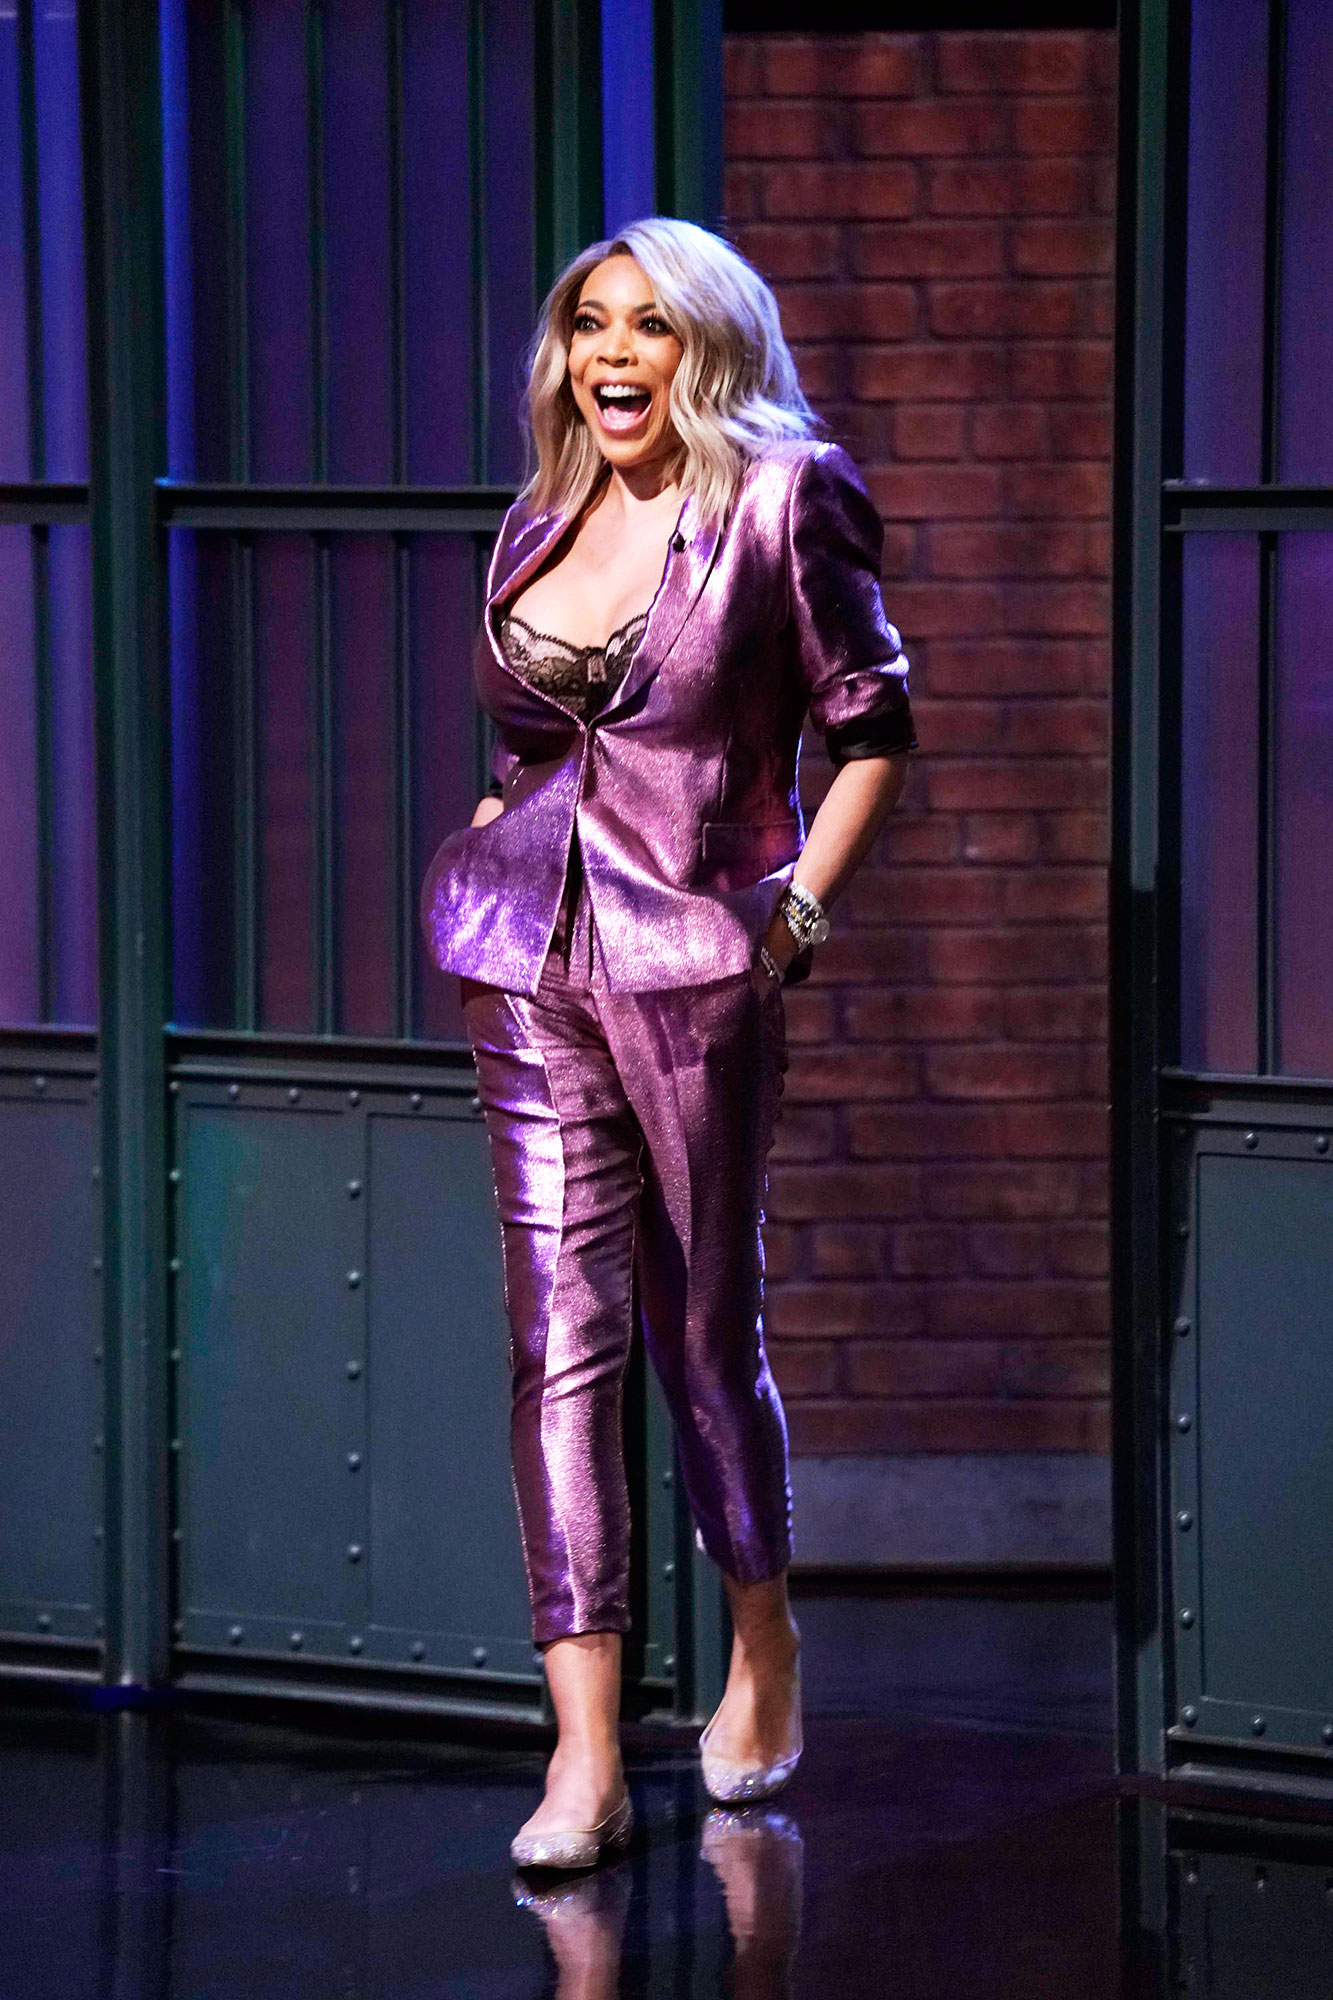 Wendy Williams Returns After 2-Month Hiatus - LATE NIGHT WITH SETH MEYERS — Episode 750 — Pictured: Talk show host, Wendy Williams arrives on October 30, 2018